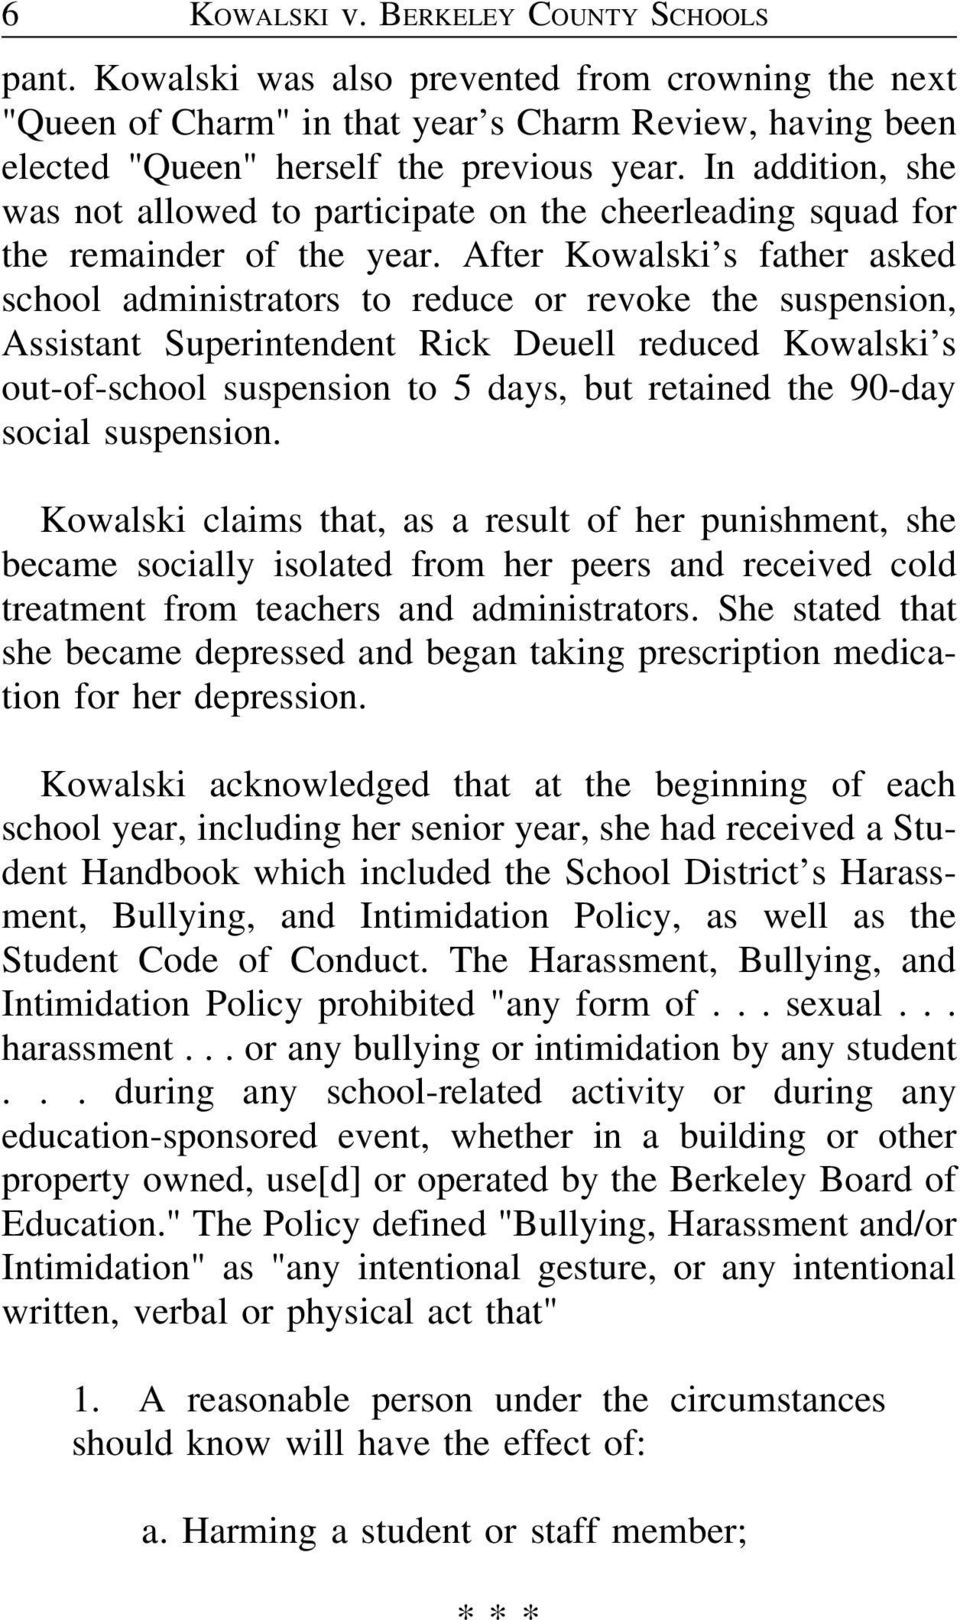 After Kowalski s father asked school administrators to reduce or revoke the suspension, Assistant Superintendent Rick Deuell reduced Kowalski s out-of-school suspension to 5 days, but retained the